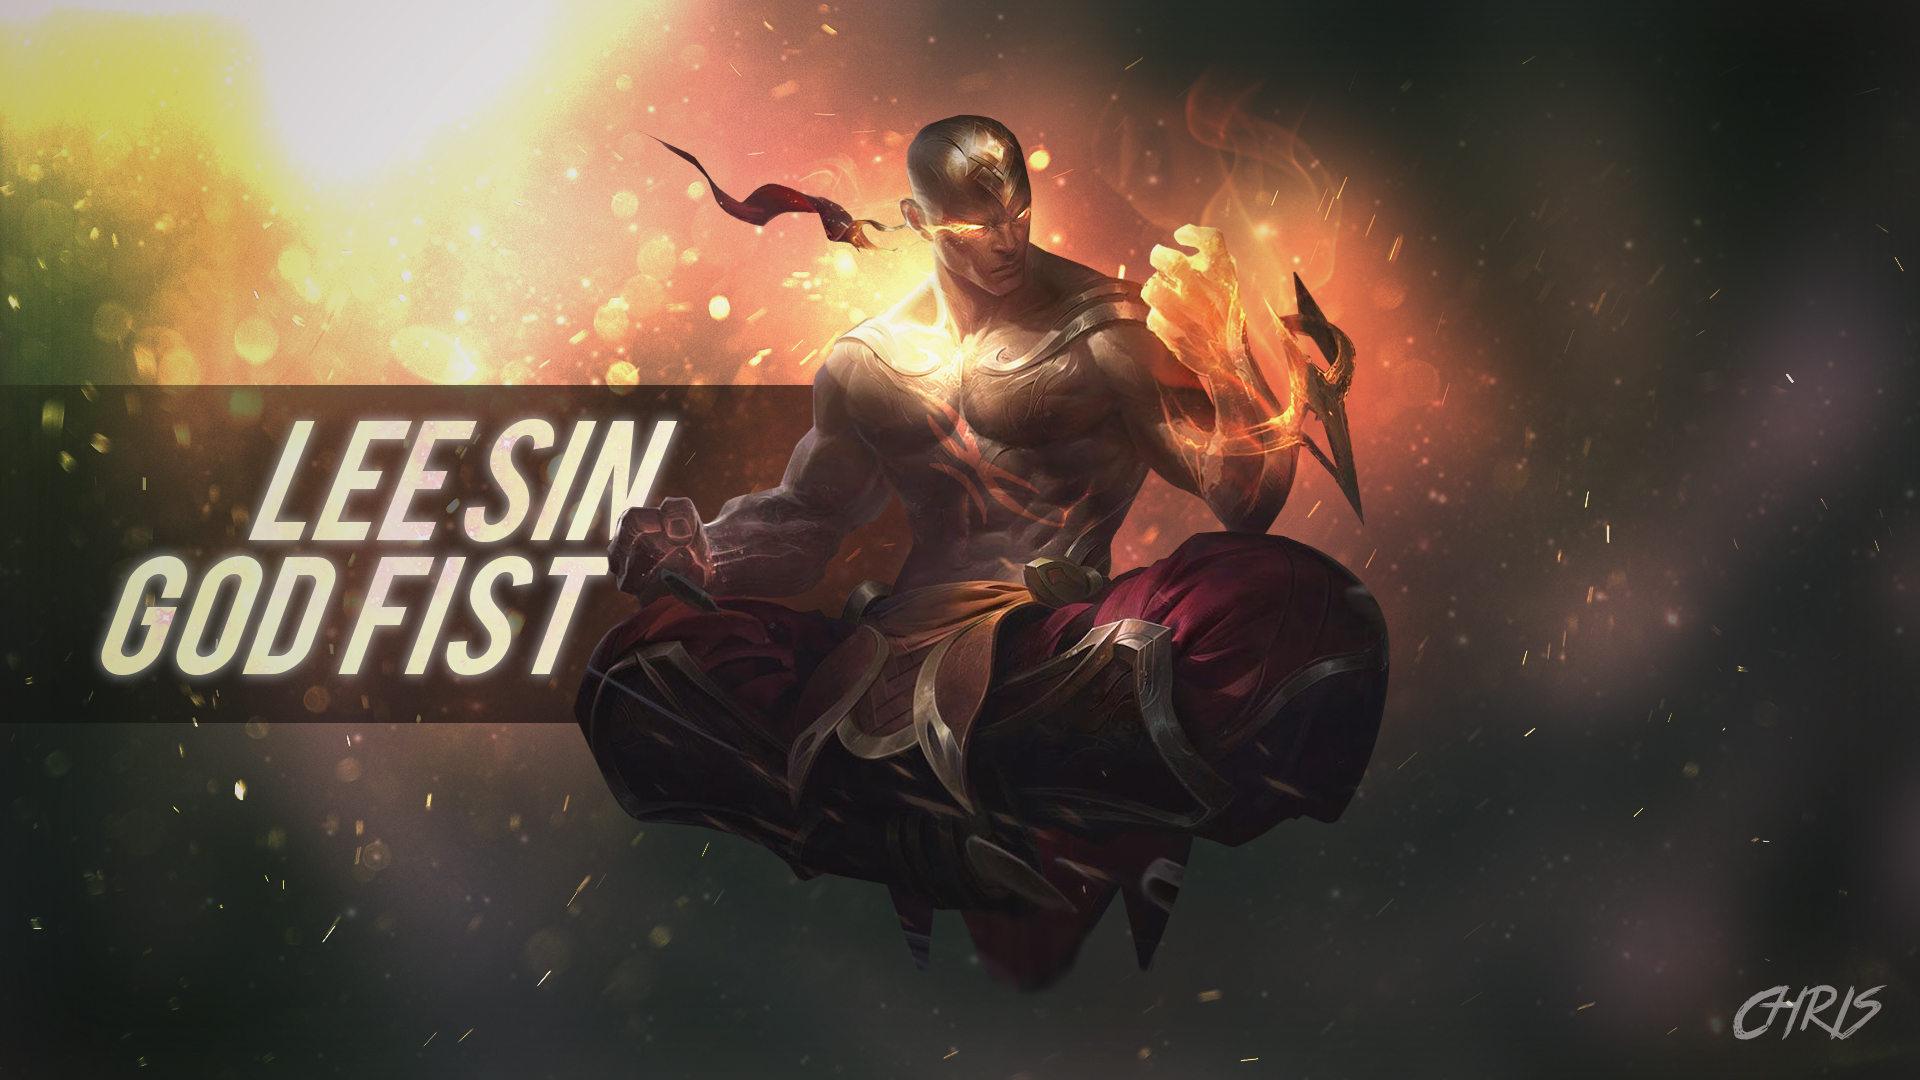 God Fist Lee Sin Lolwallpapers